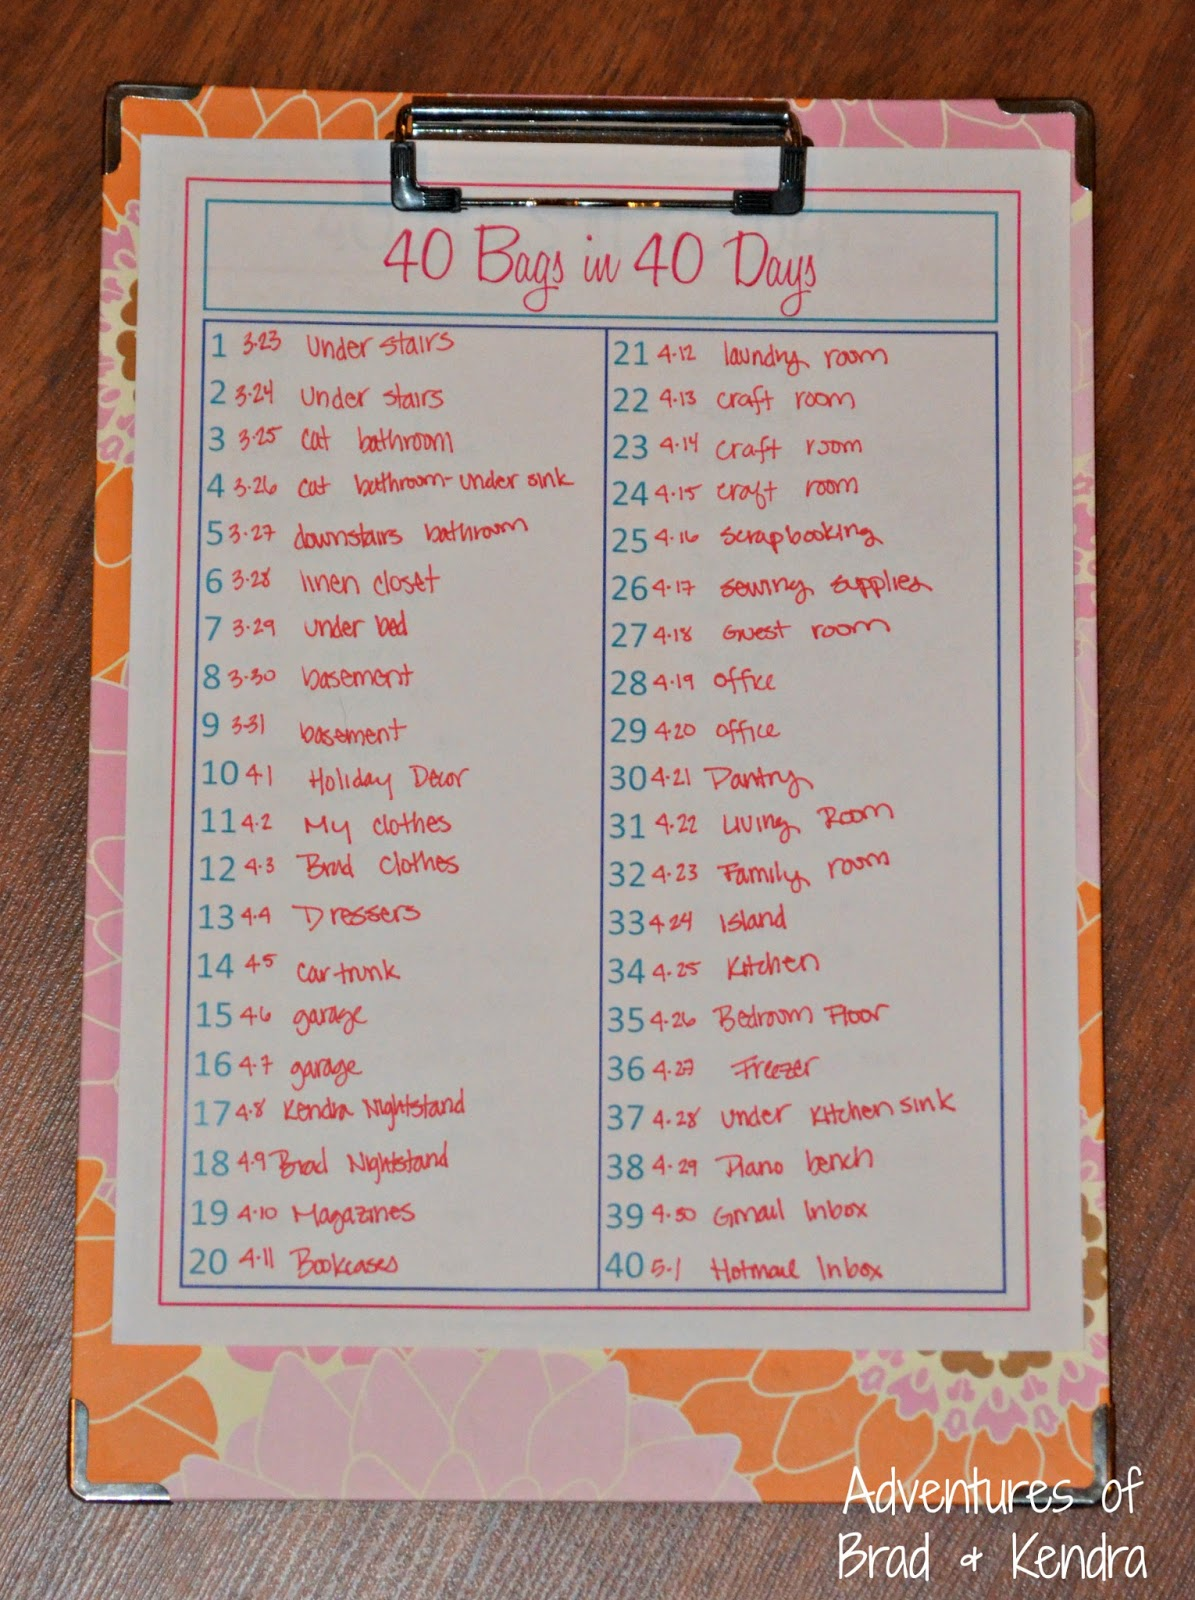 This is an image of Transformative 40 Bags in 40 Days Printable